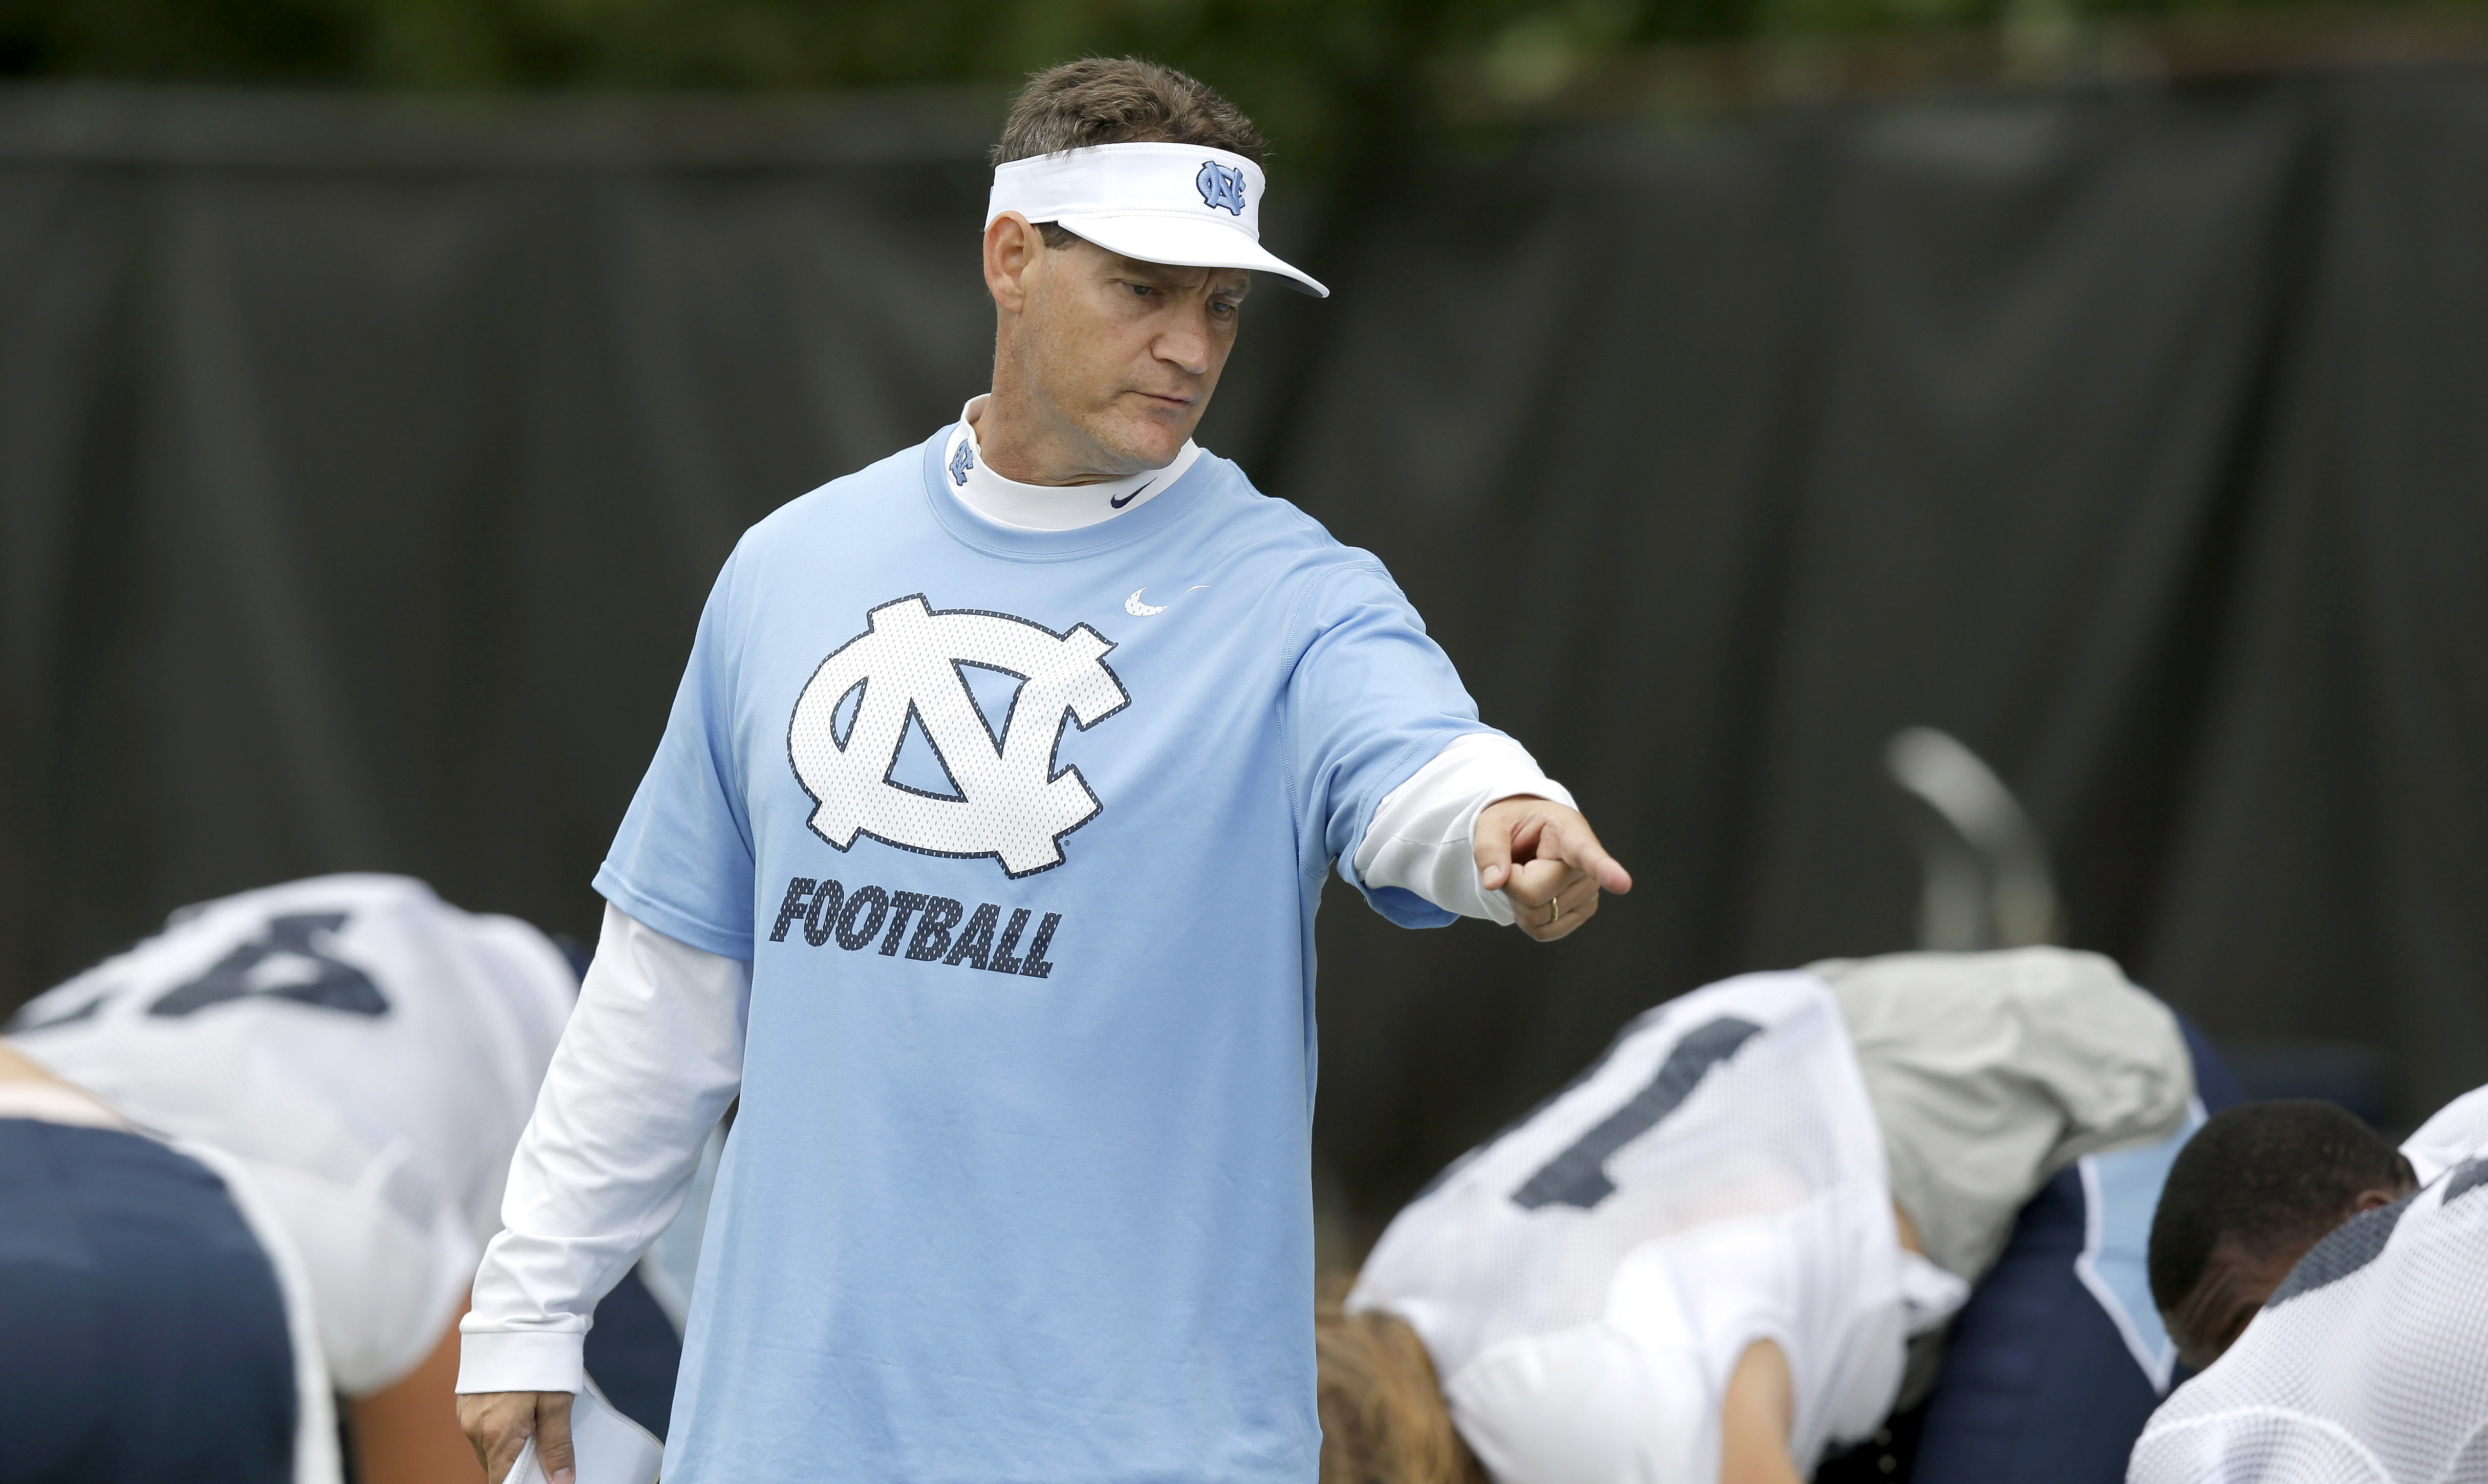 FILE - In this Aug. 10, 2015, file photo, North Carolina defensive coordinator Gene Chizik works with players during an NCAA college football practice in Chapel Hill, N.C. Chizik said it's difficult for defenses to prepare when they face so many new offen